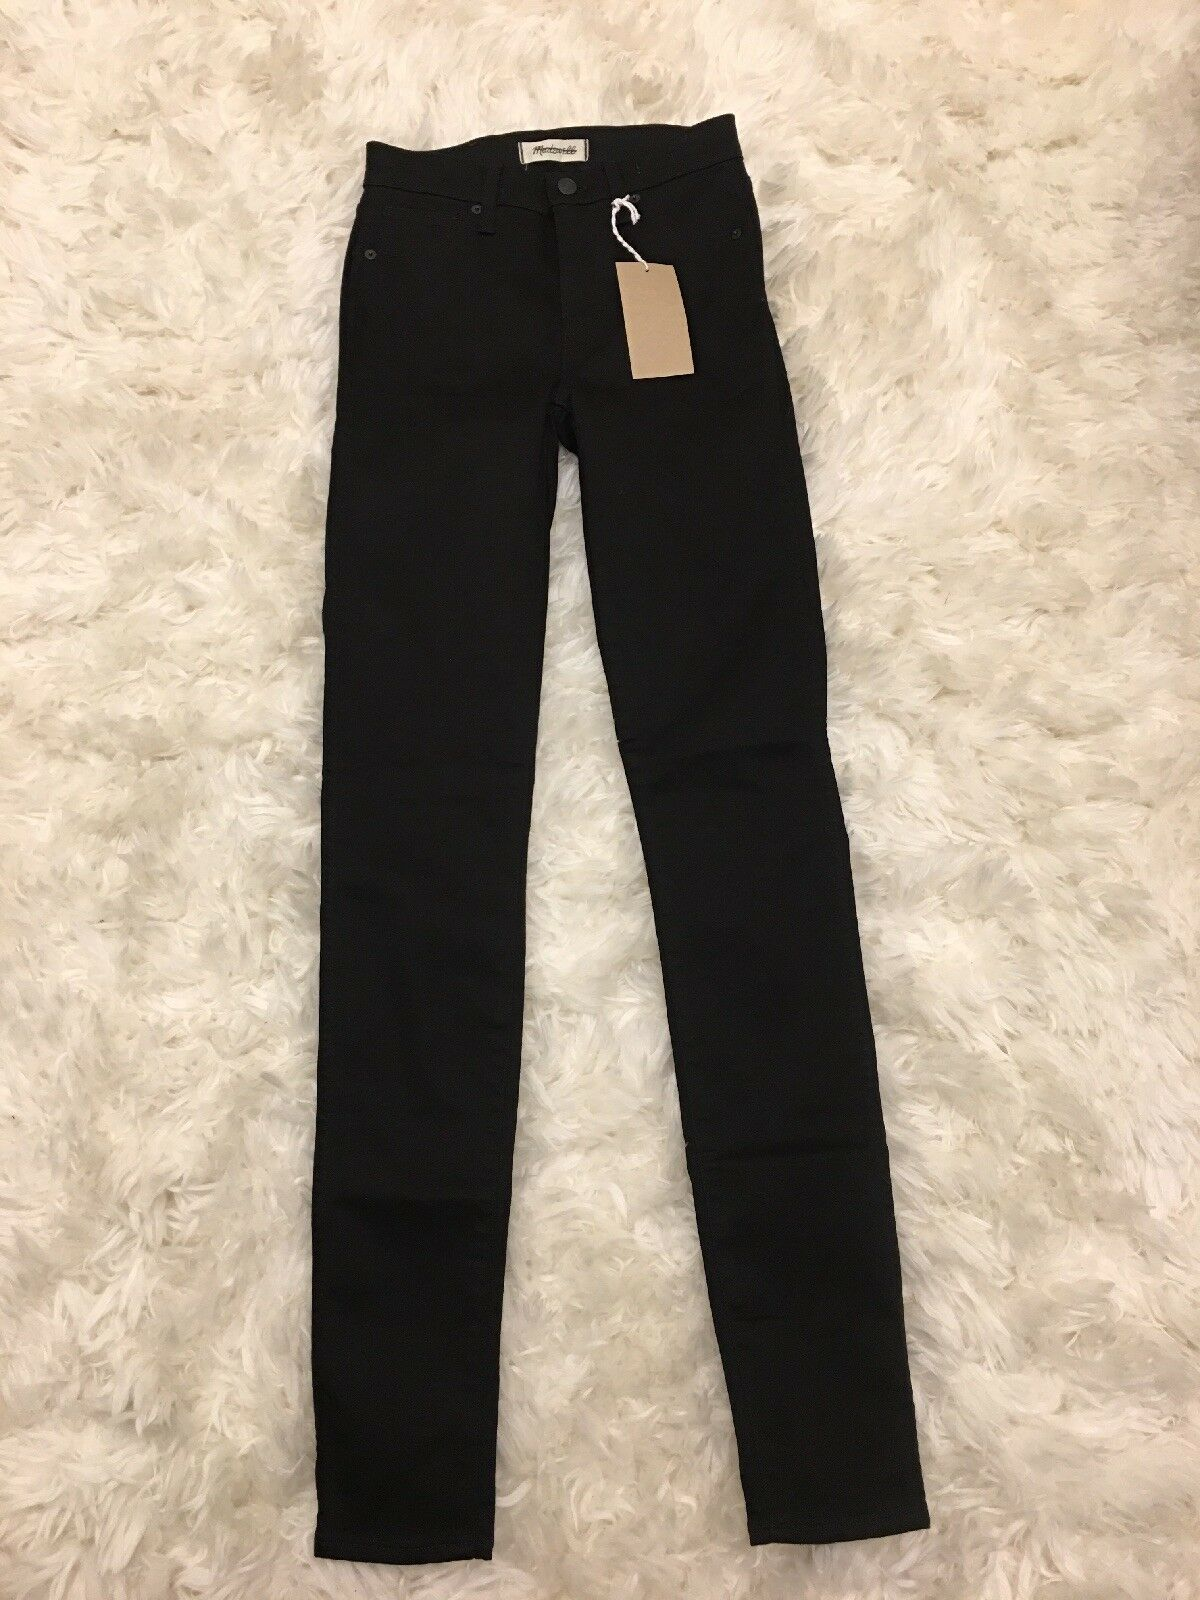 New Madewell Taller 10  High-Rise Skinny Jeans in Carbondale Wash Sz 24TL F9229